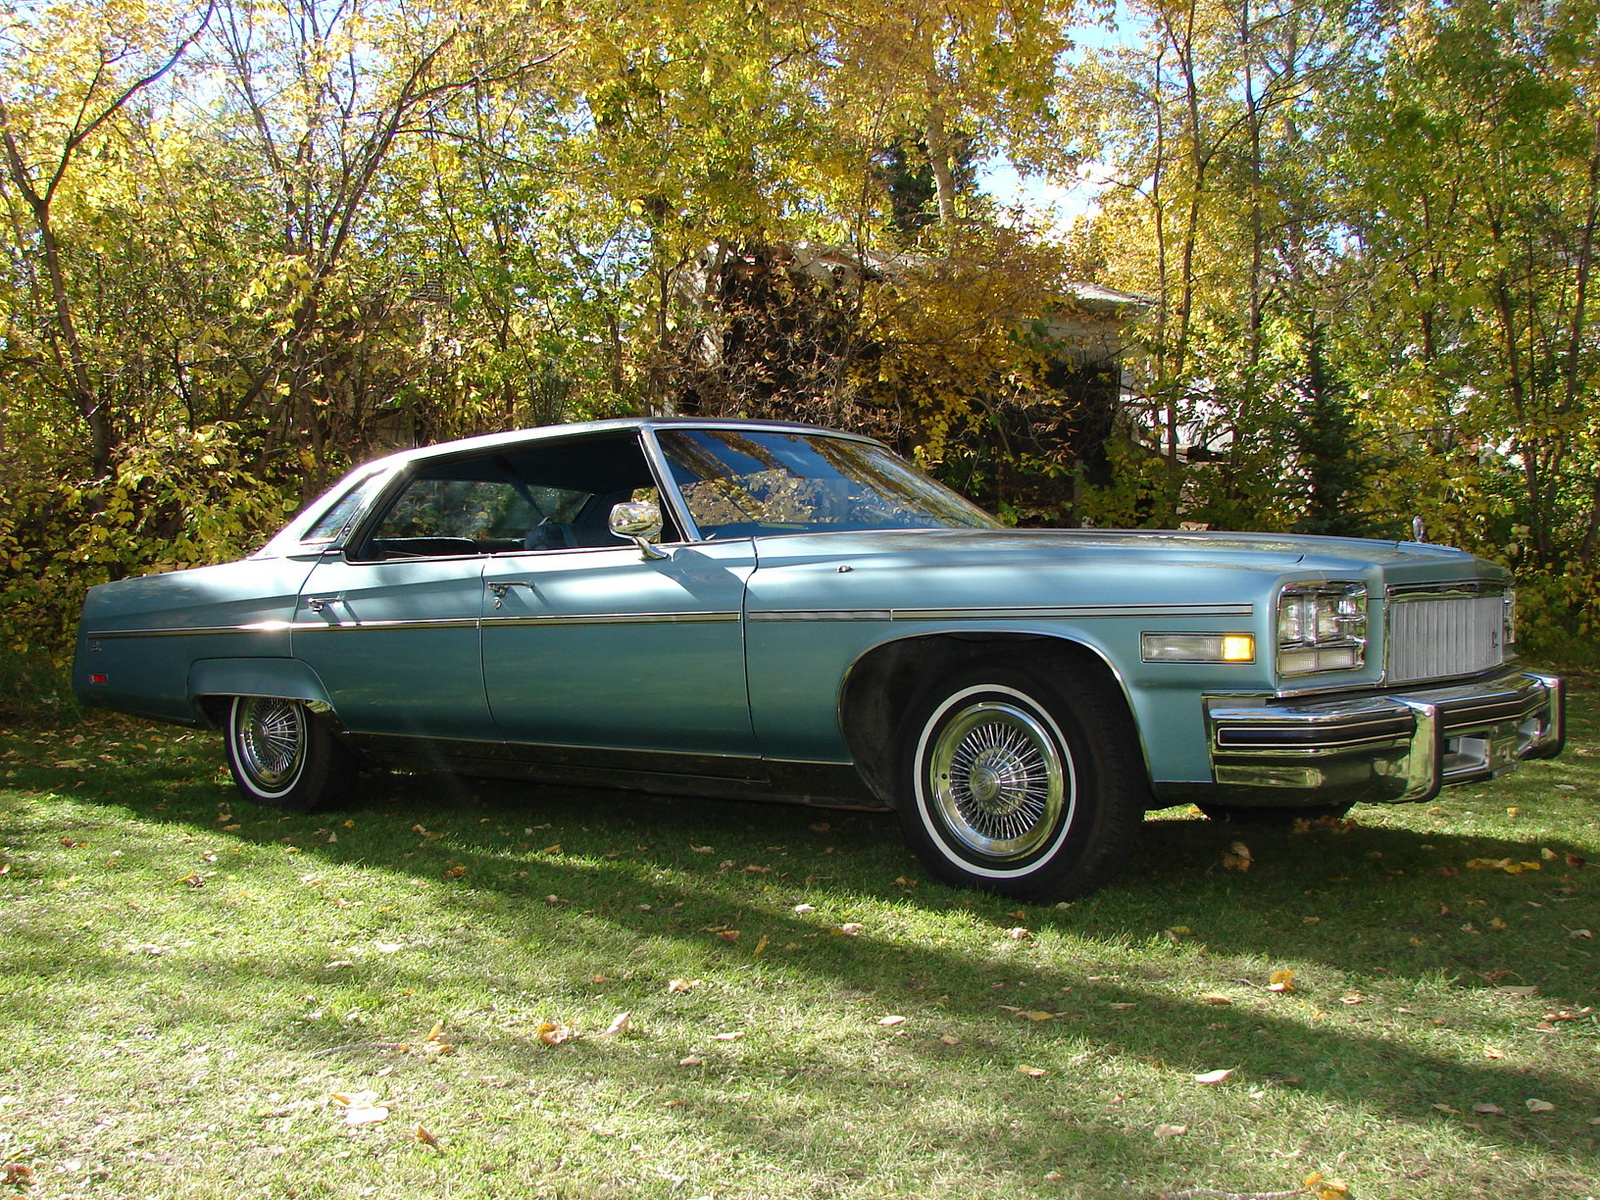 1976 Buick Electra - Pictures - 1976 buick electra limited - CarGurus